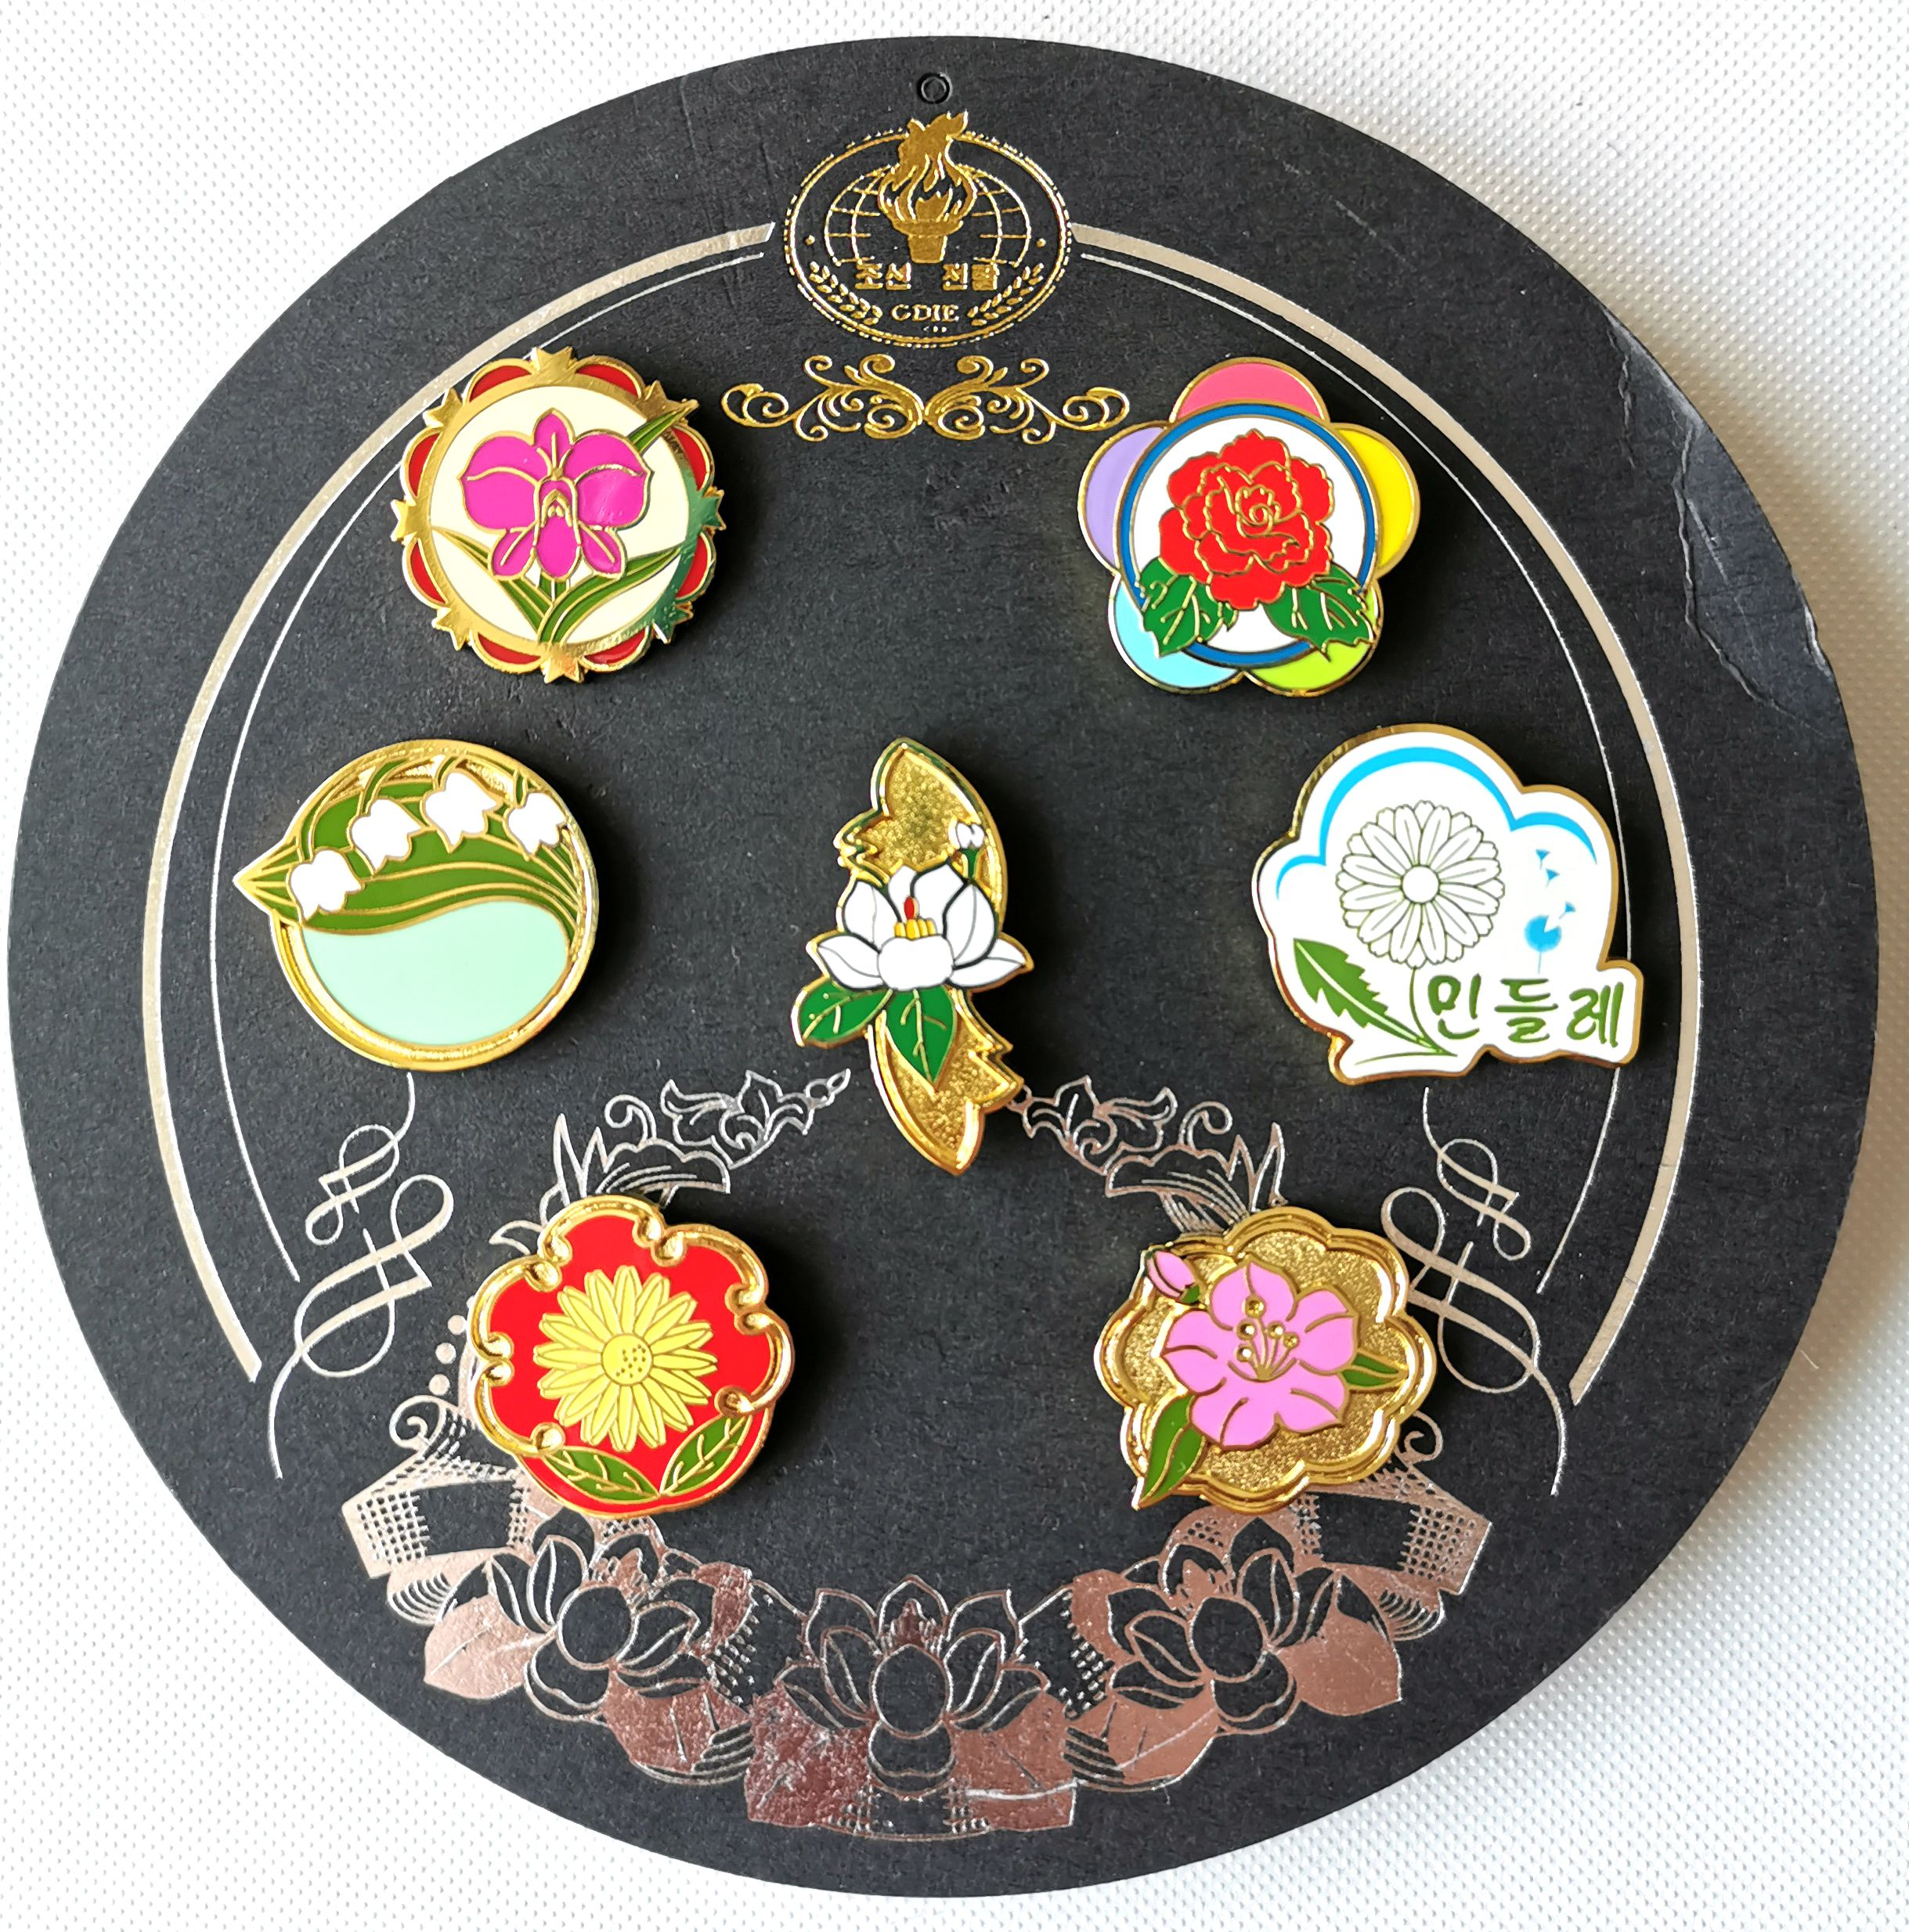 L5484, Korea 2019 Set of 7 Pcs Medal Pins, Flowers and Festival